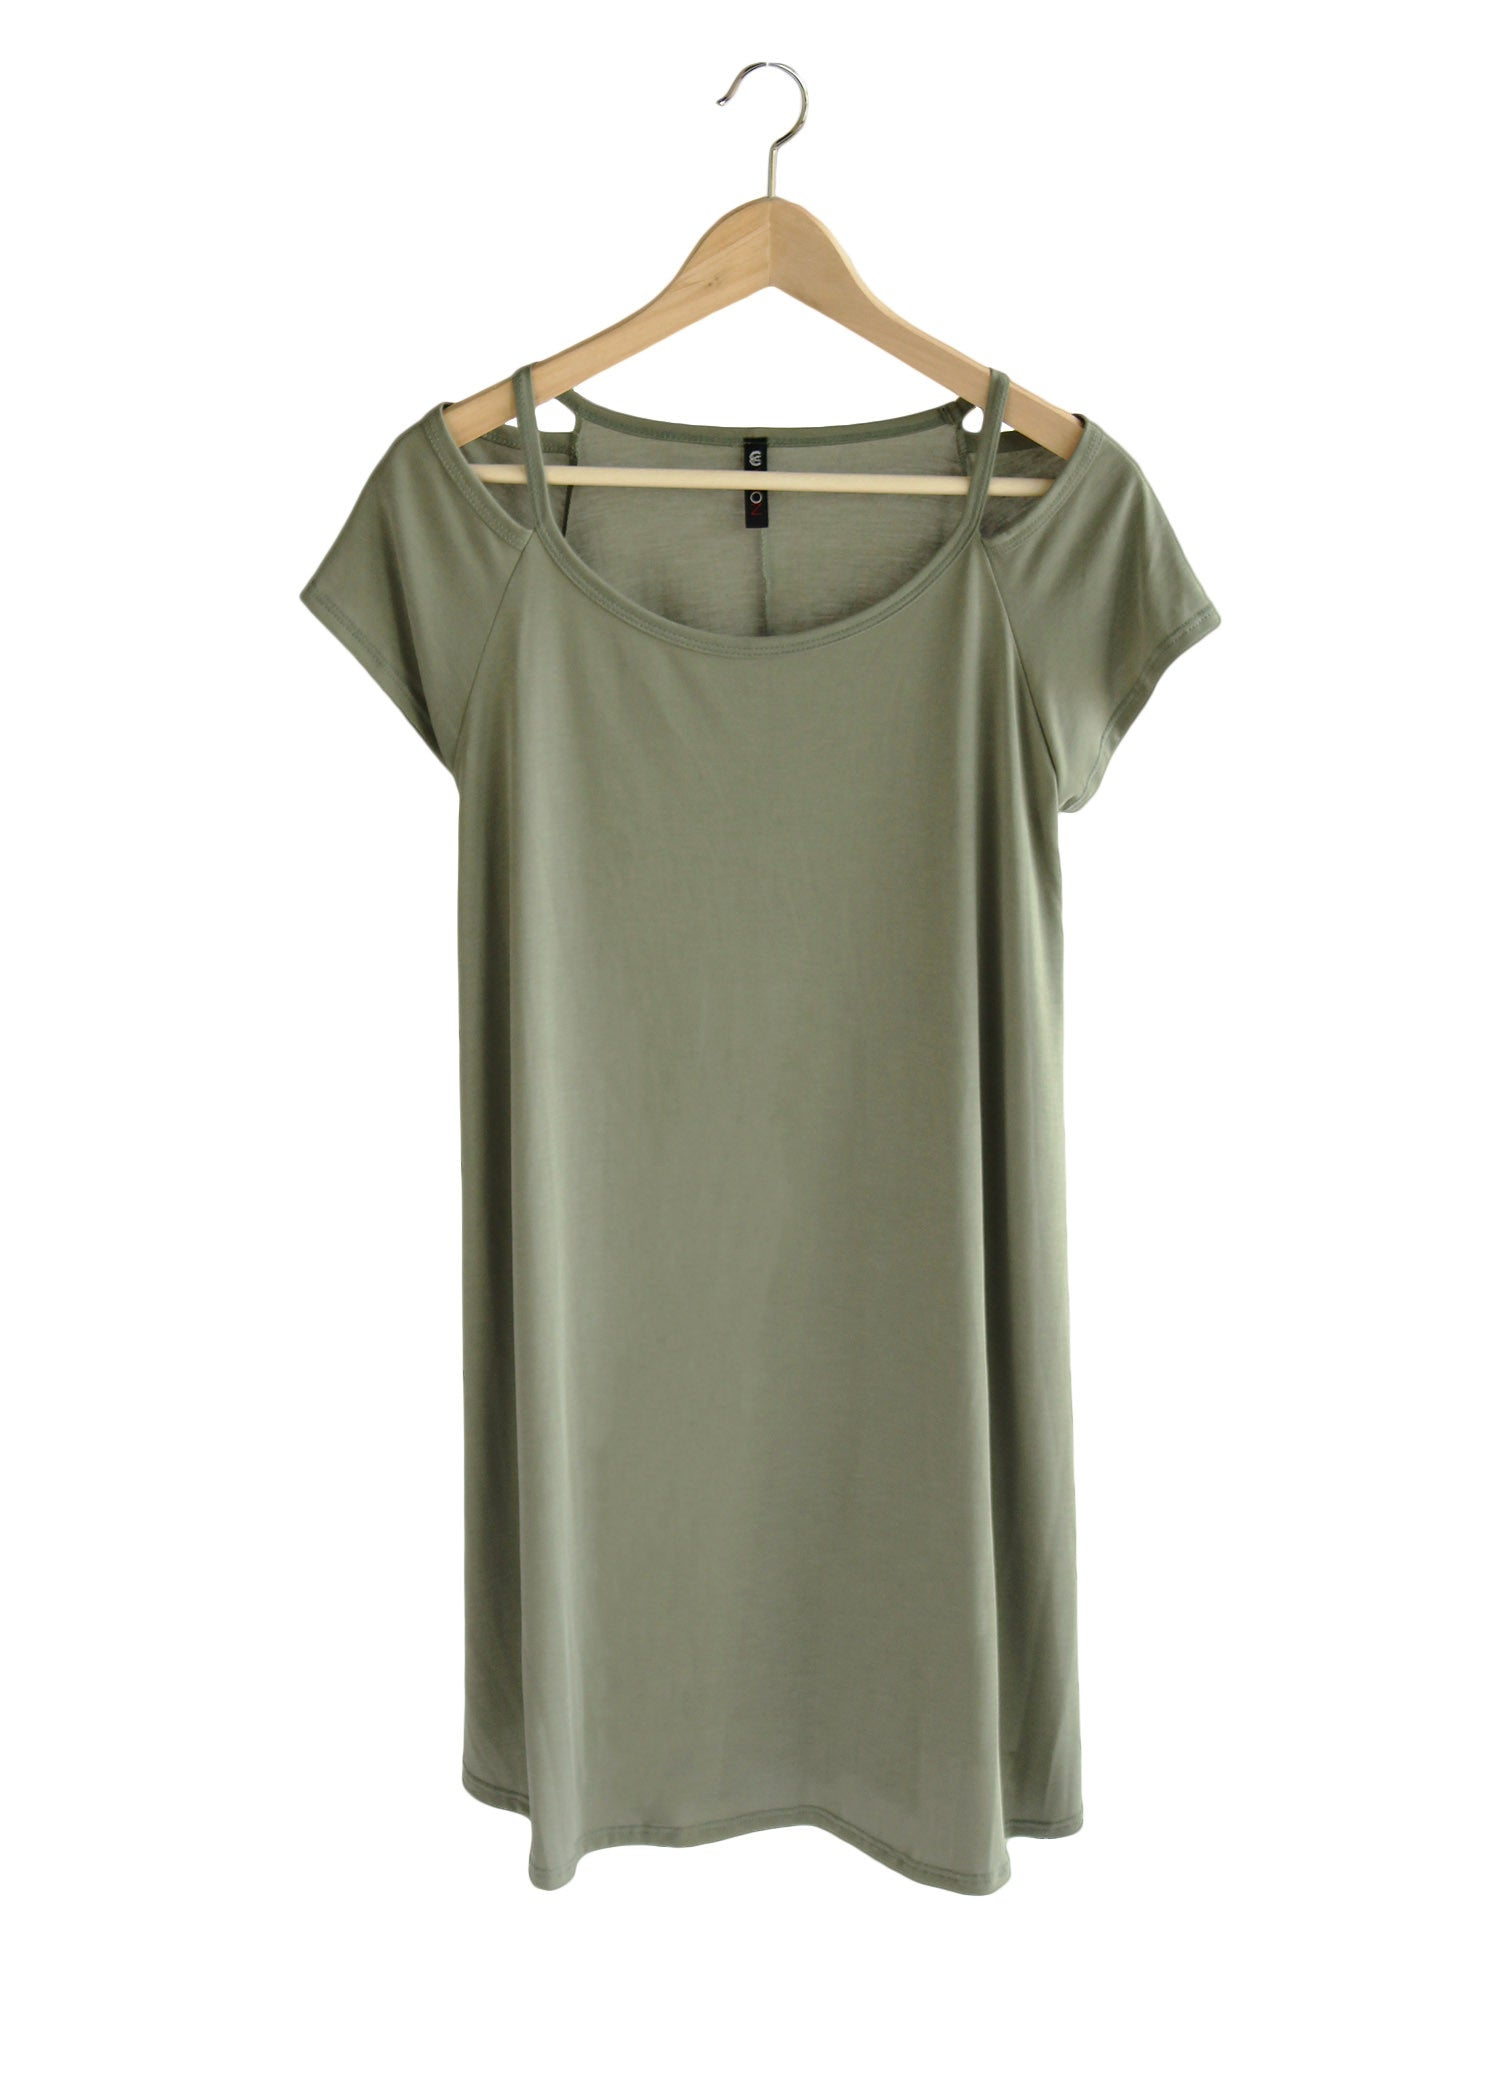 Olive Sundress | Made in America | Ethical Fashion